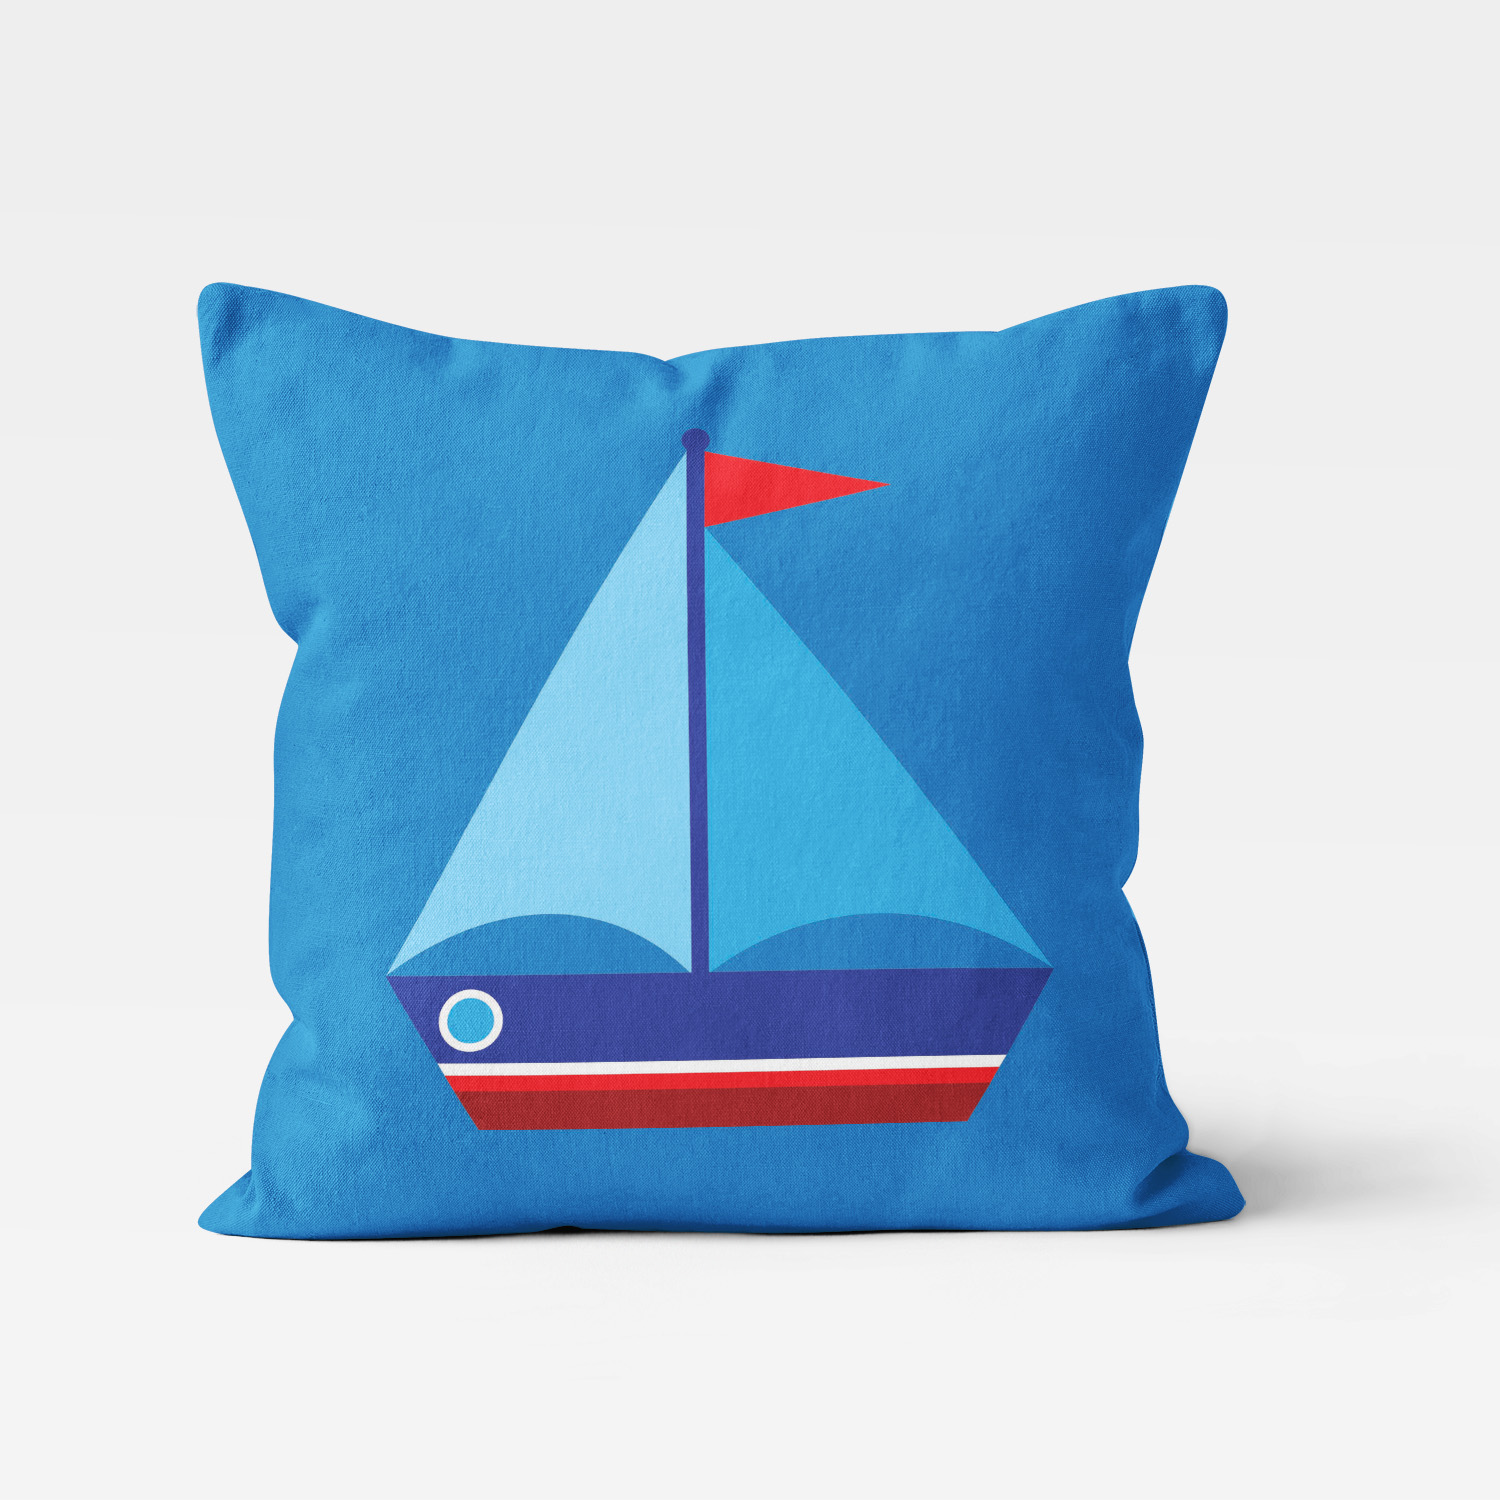 PKTP-00008-OceanAdventures-THROWPILLOW Ocean Adventures Nautical Theme Sailboat Boys Kids Accent Throw Pillow Room Decor Accessories by Pickleberry Kids